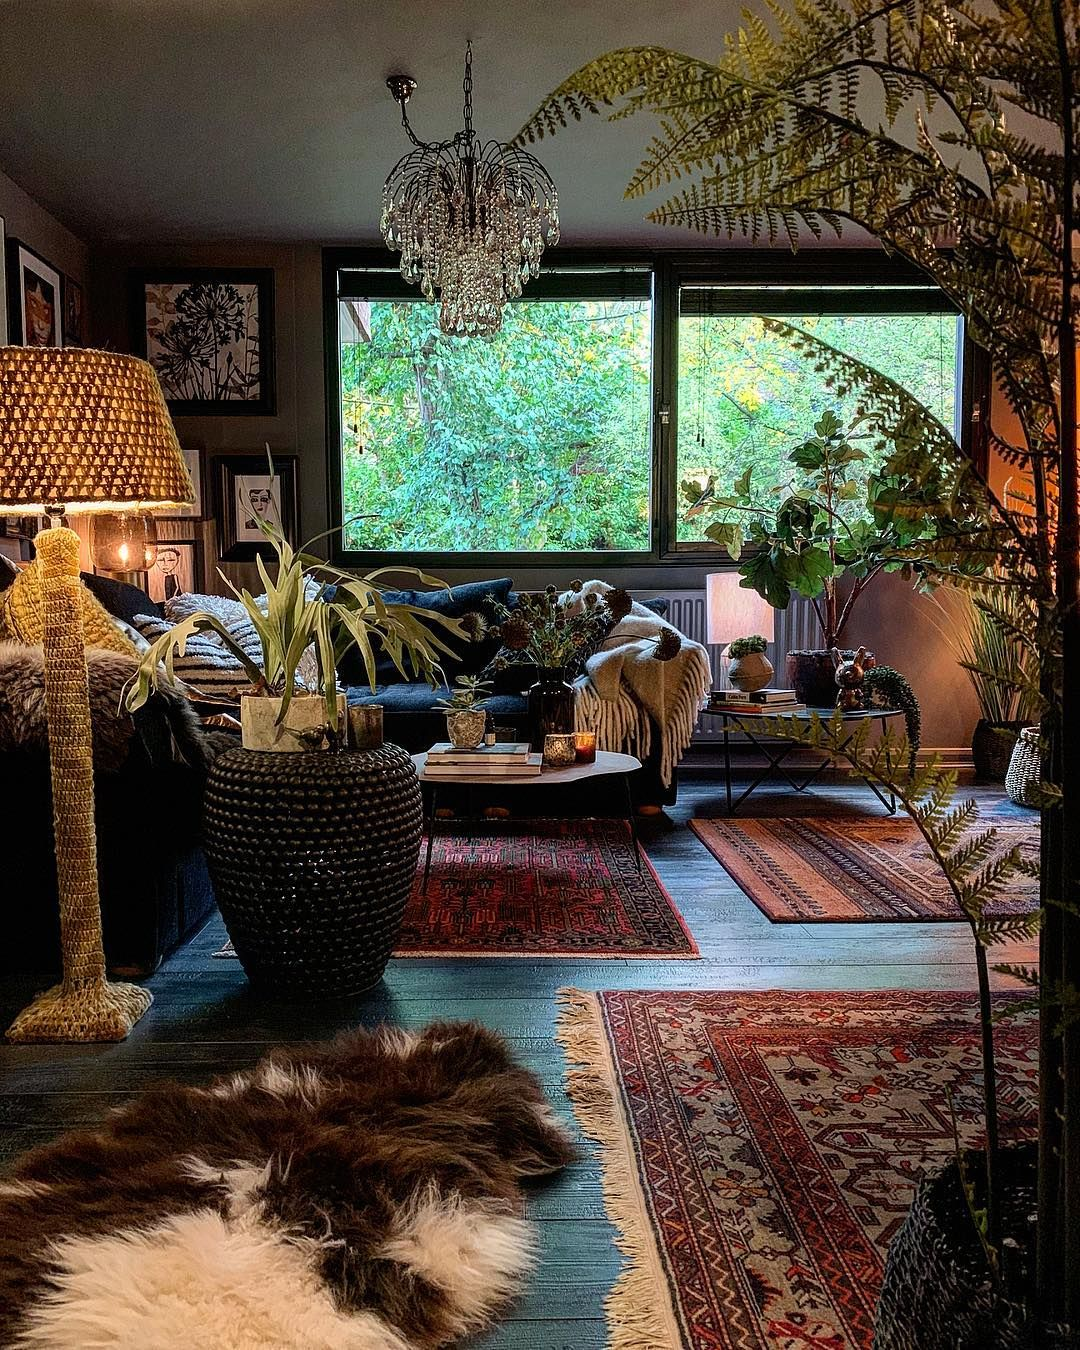 So This Was Taken Last Week When The Weather Was Much Nicer Not Sure What It S Like Where You Are But In Lond Bohemian Decor Inspiration Apartment Decor Decor